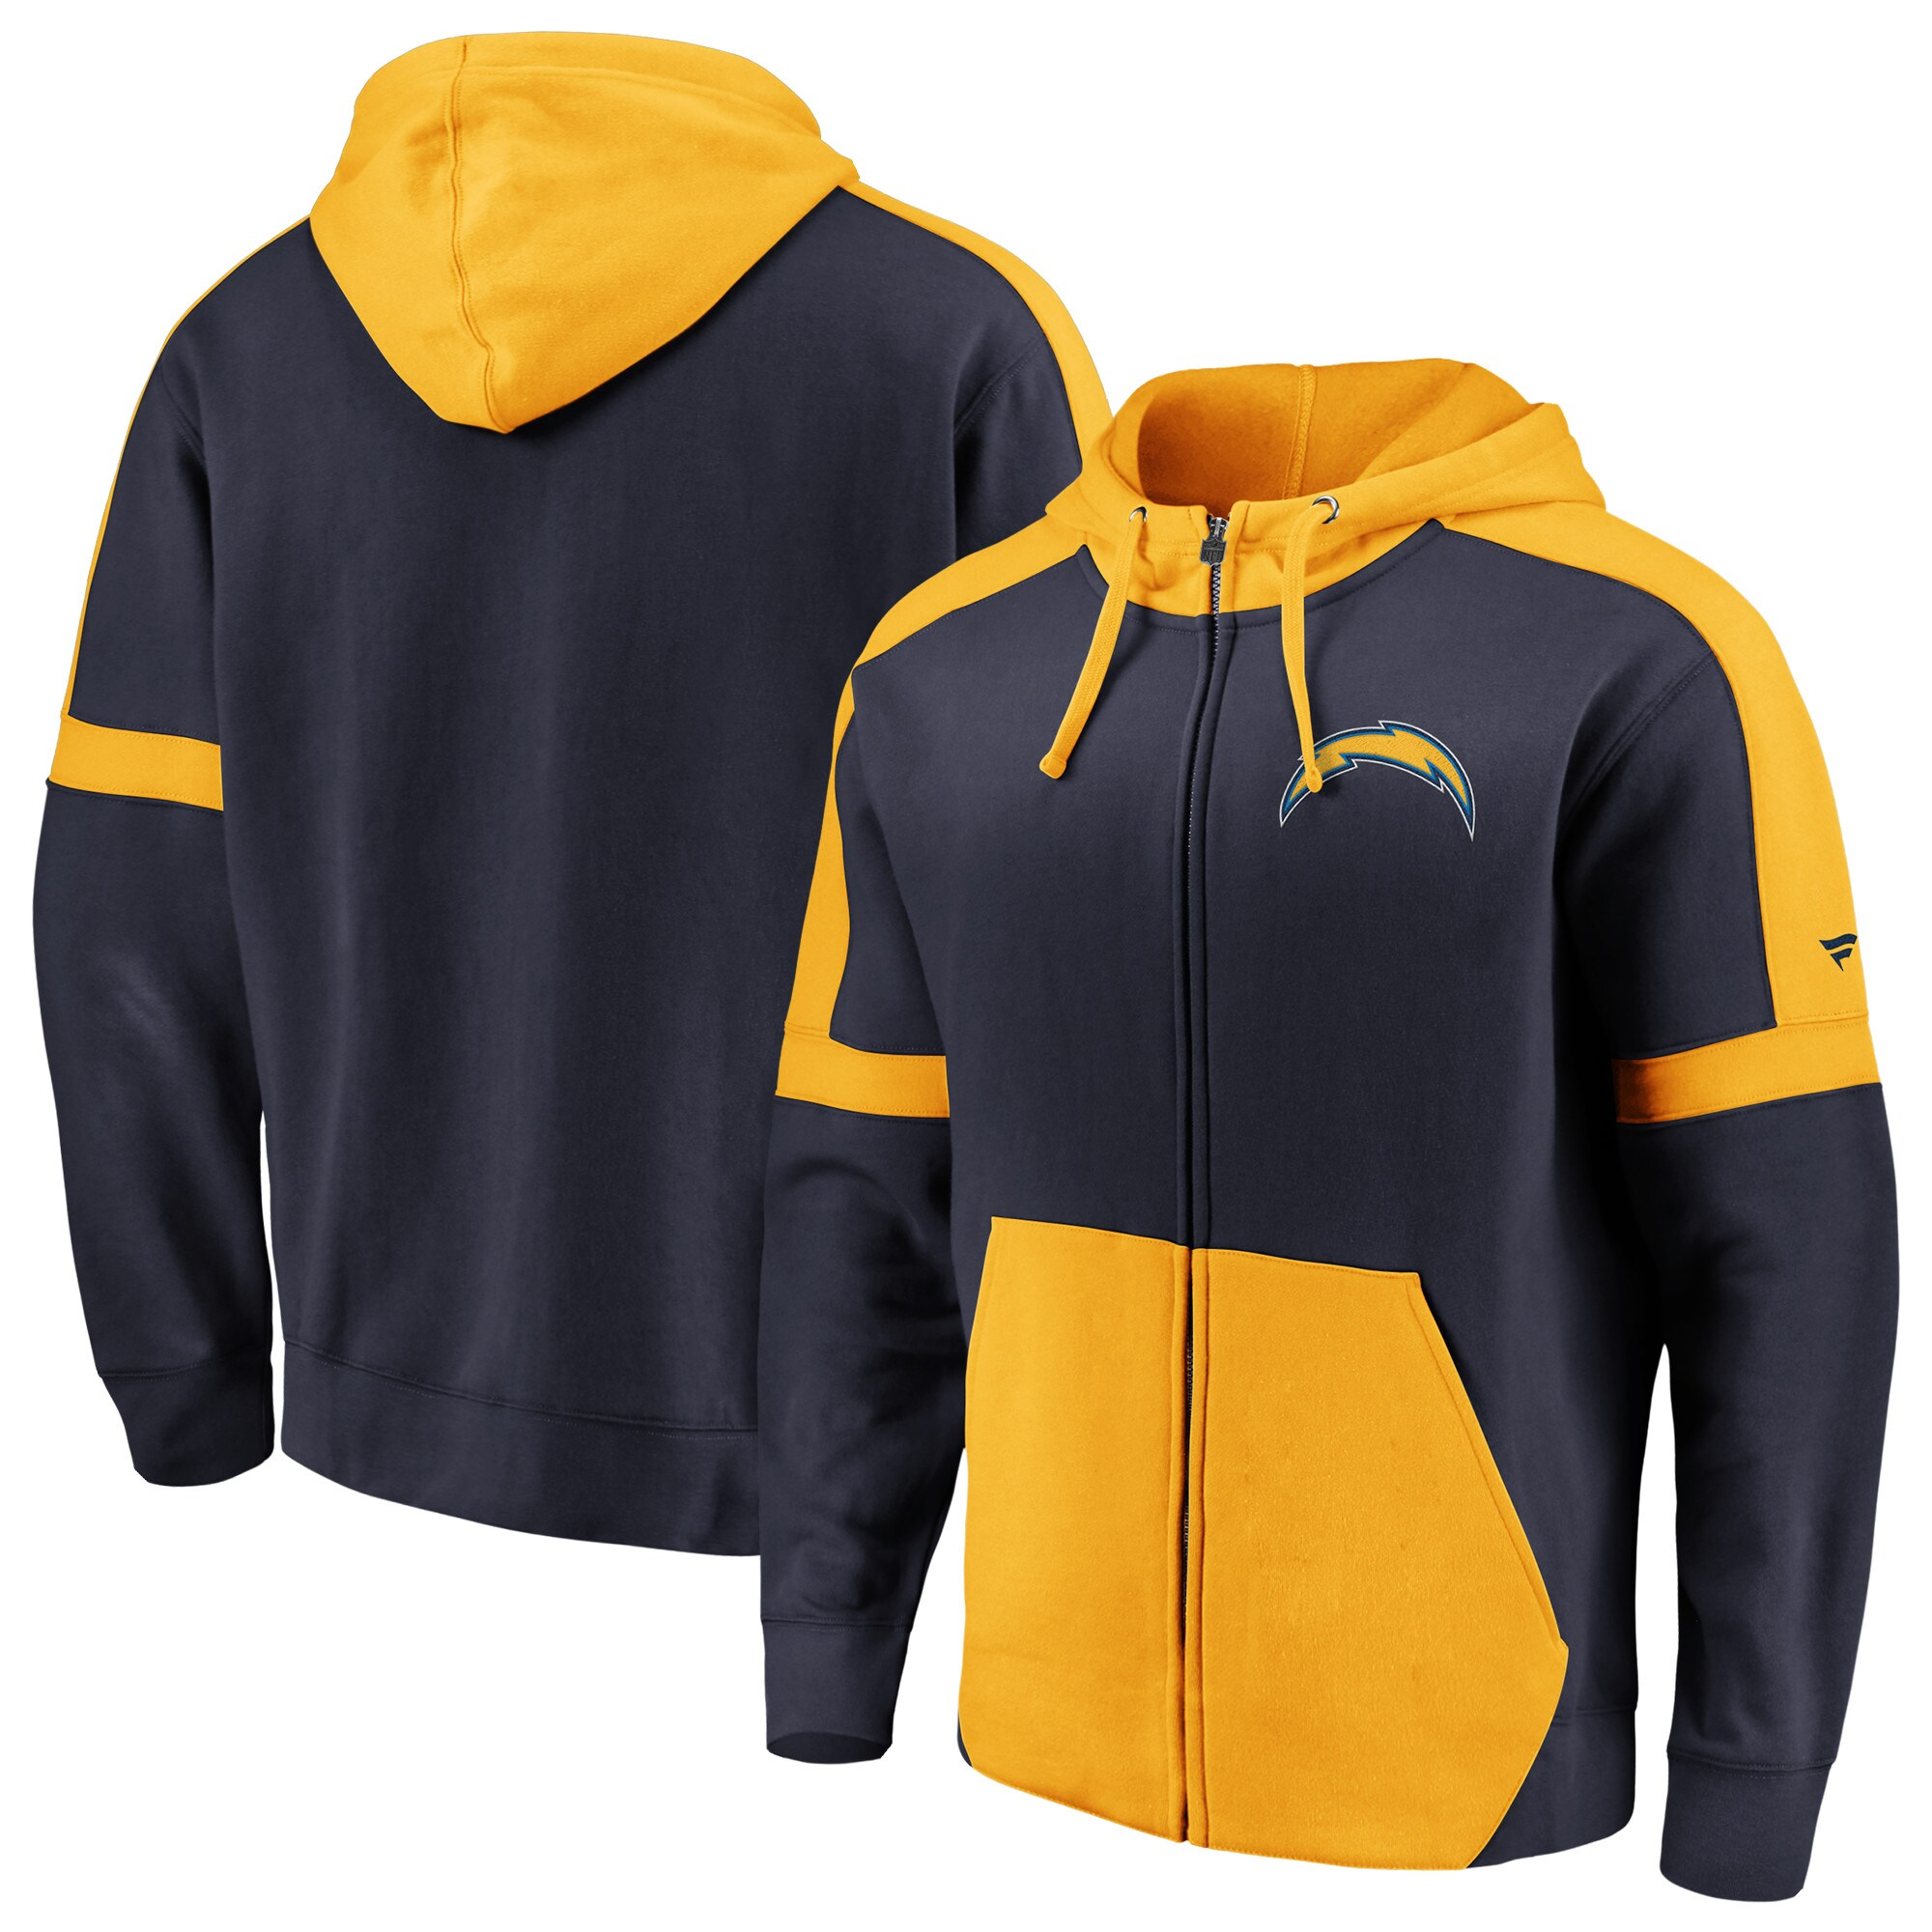 Los Angeles Chargers NFL Pro Line by Fanatics Branded Big & Tall Iconic Full-Zip Hoodie - Navy/Gold